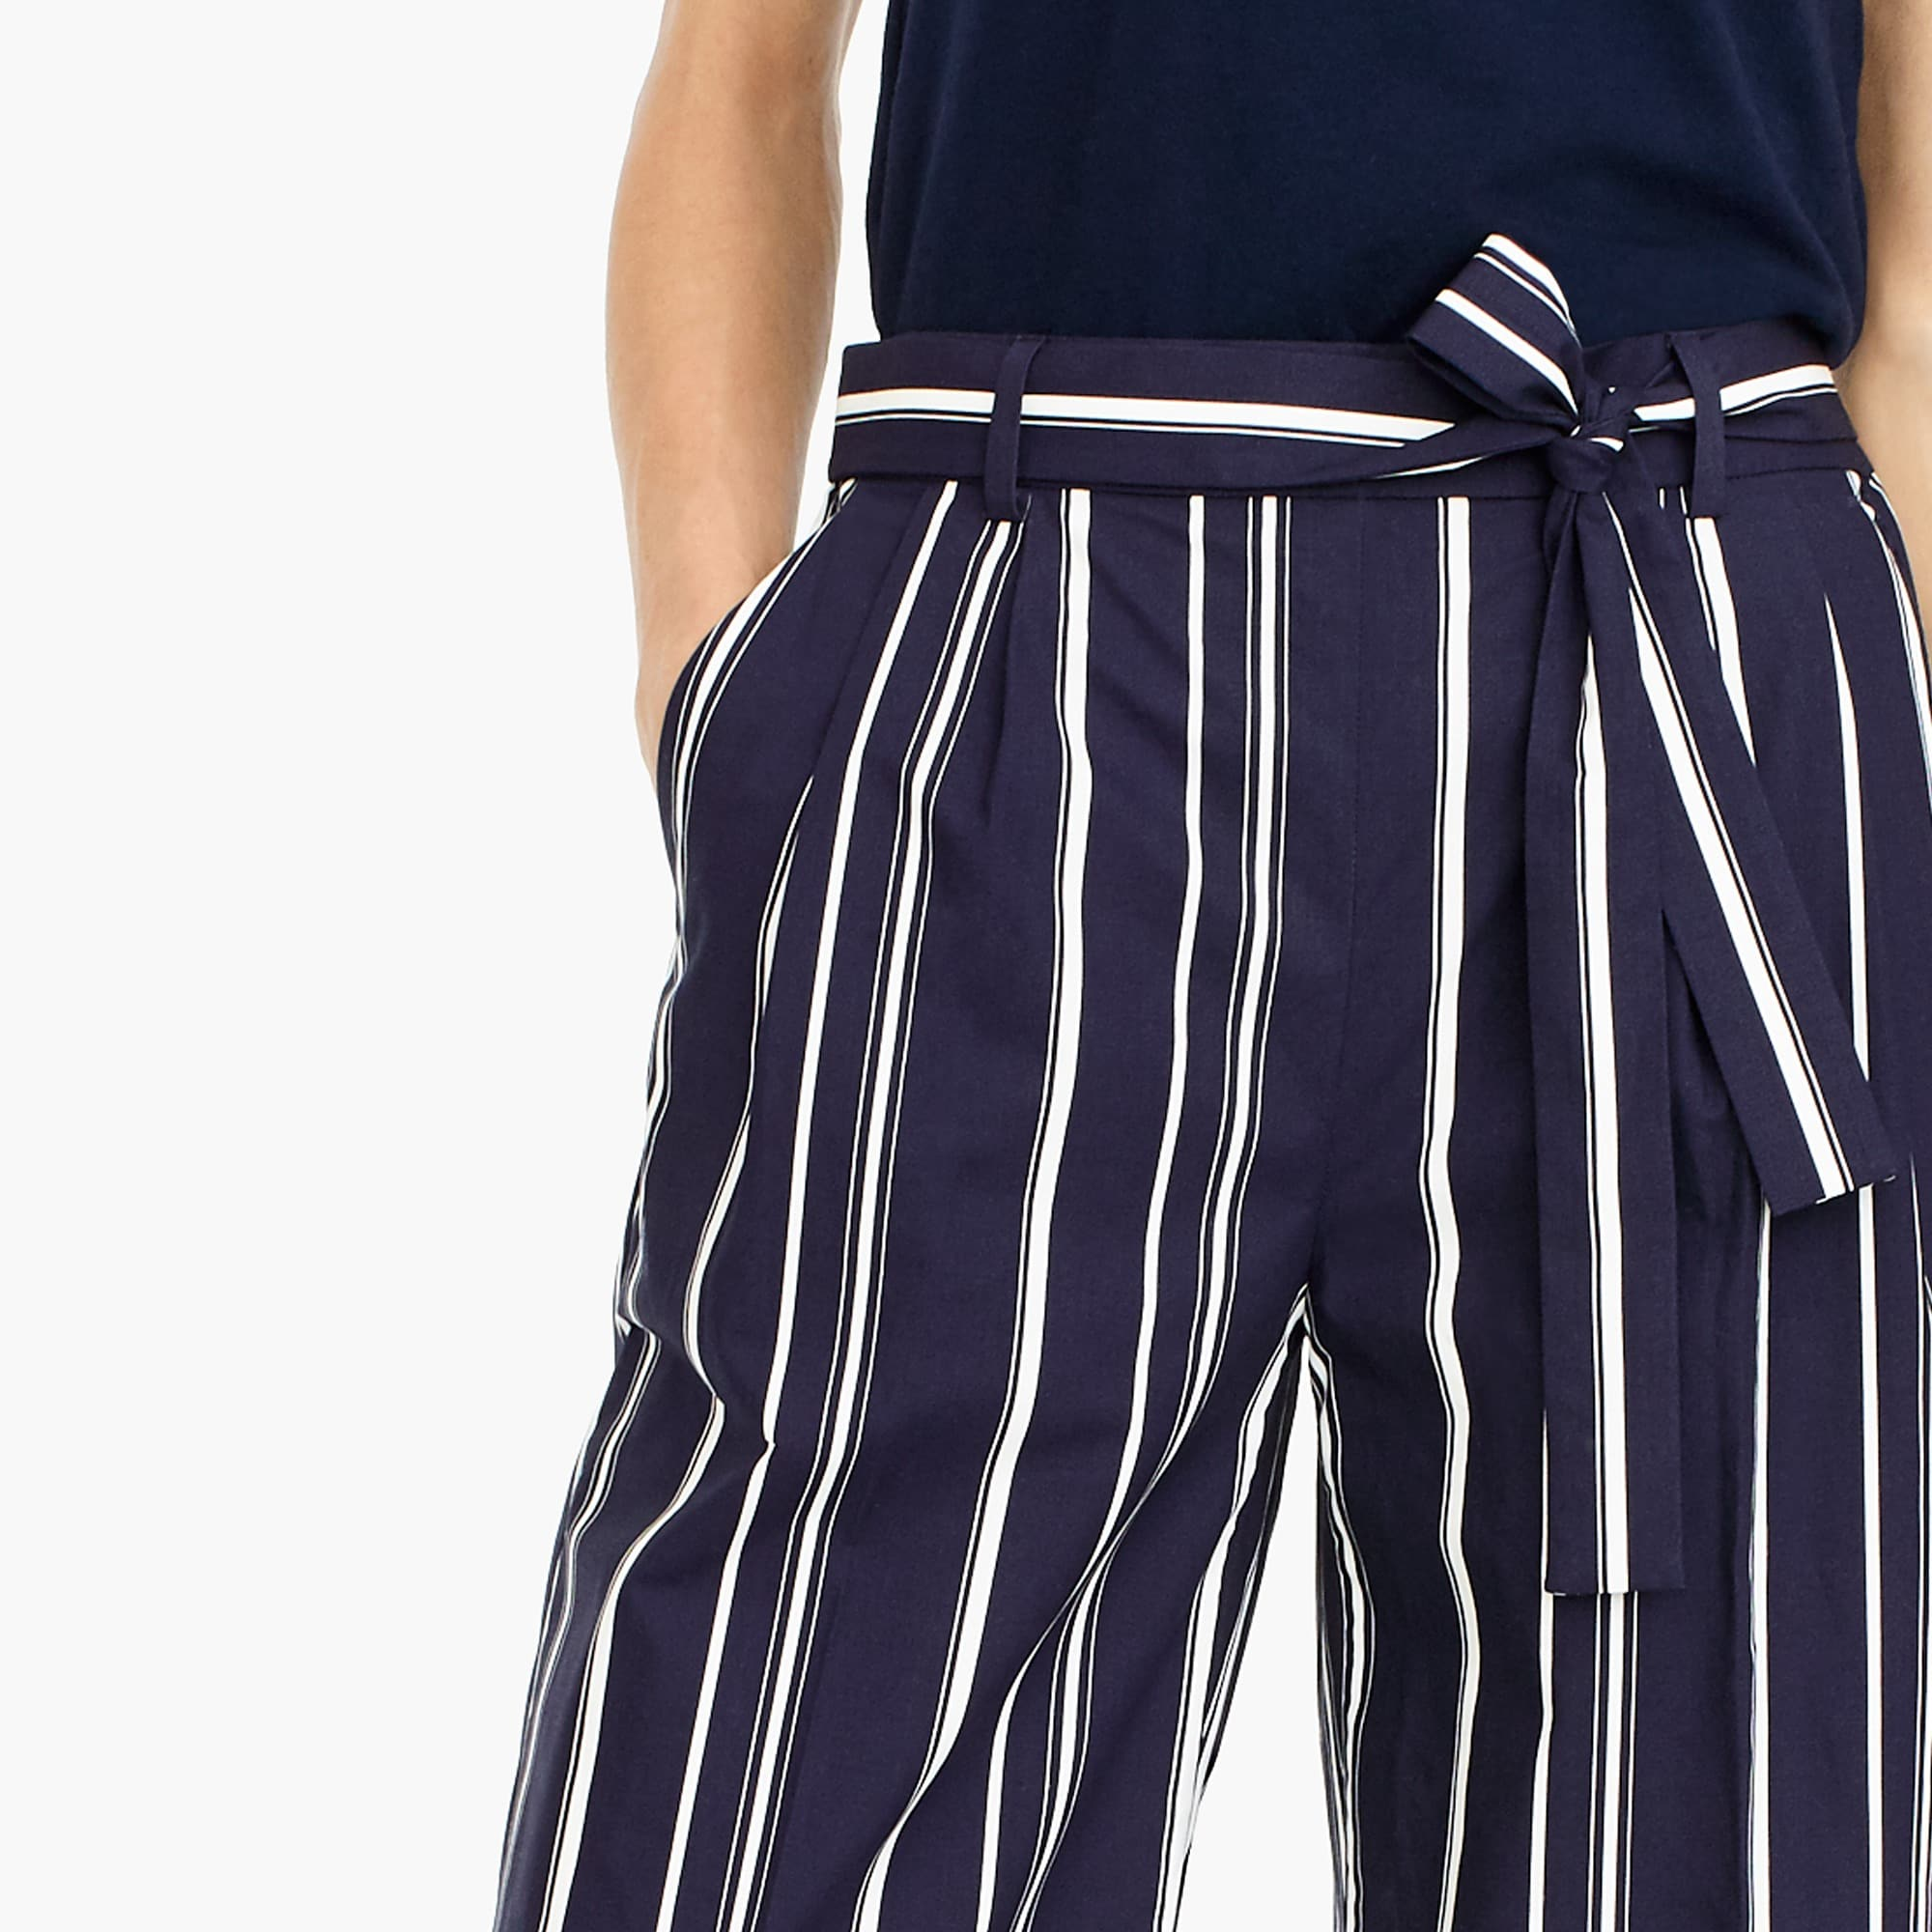 Image 3 for Tall wide-leg cropped pant in stripe